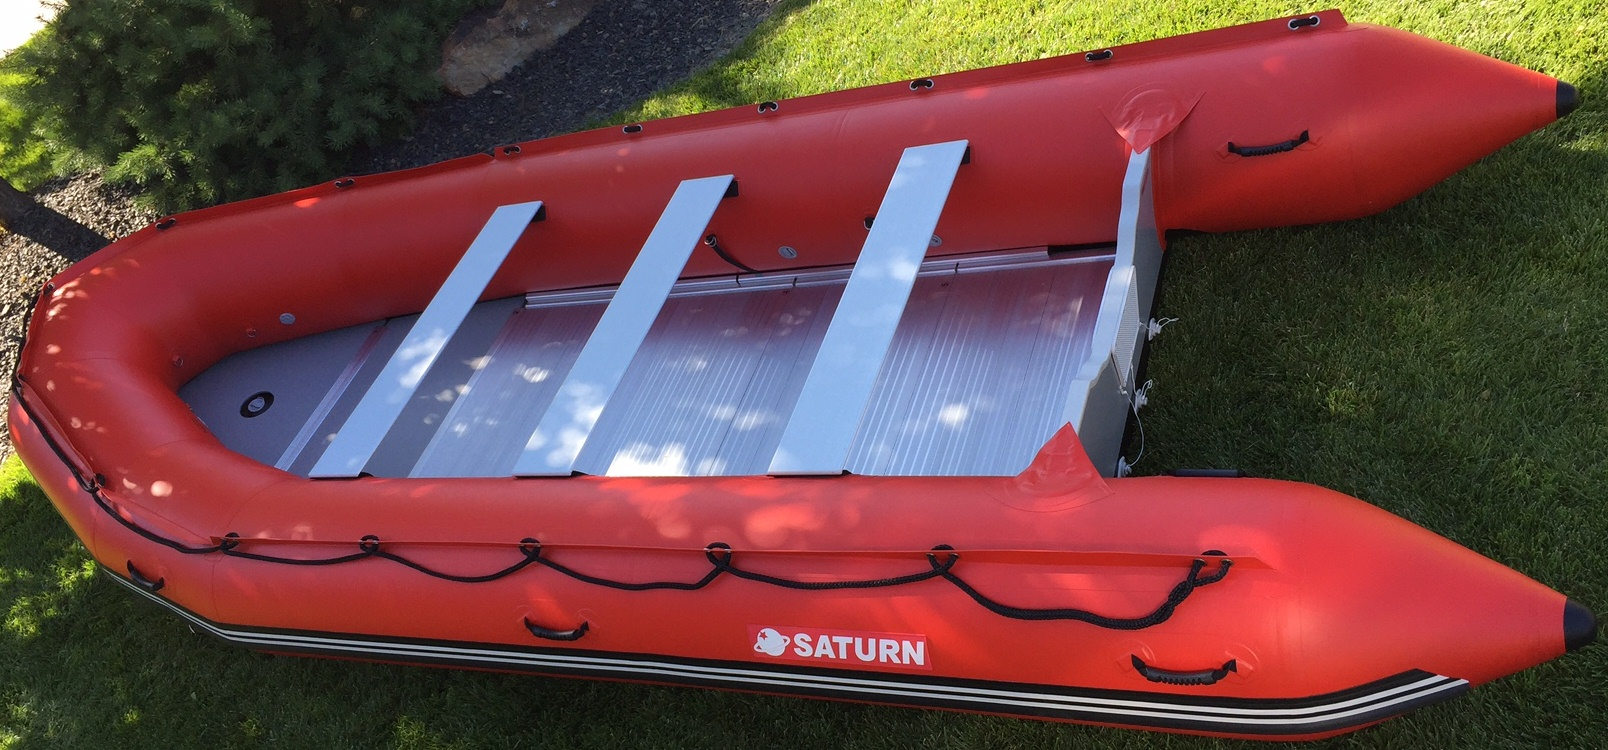 18' Saturn Inflatable Rescue Boat